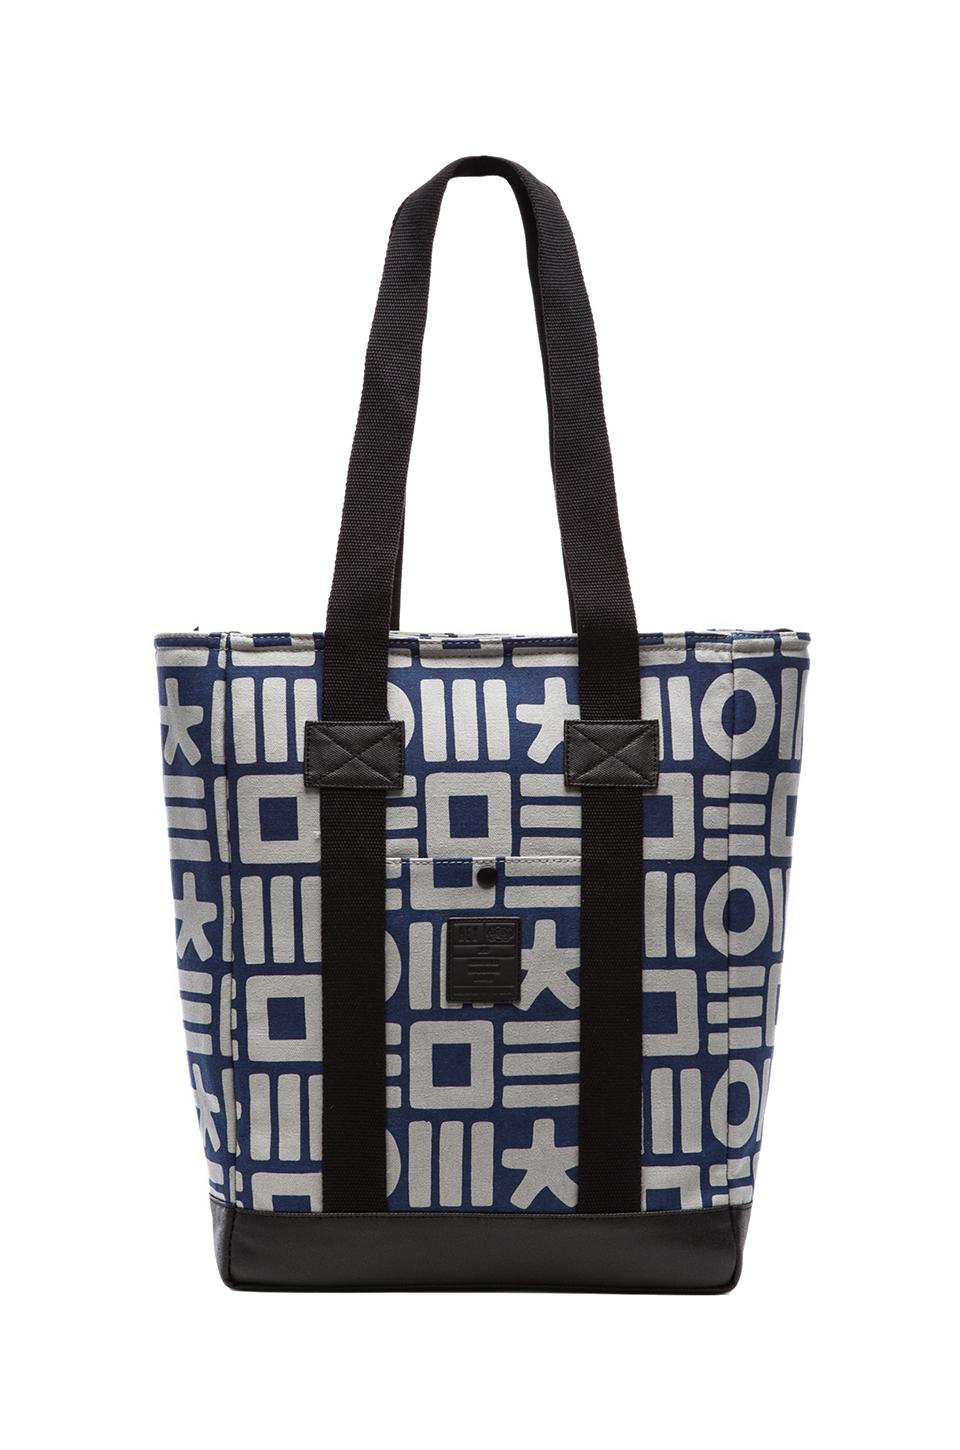 HEX Tote in Black & Grey